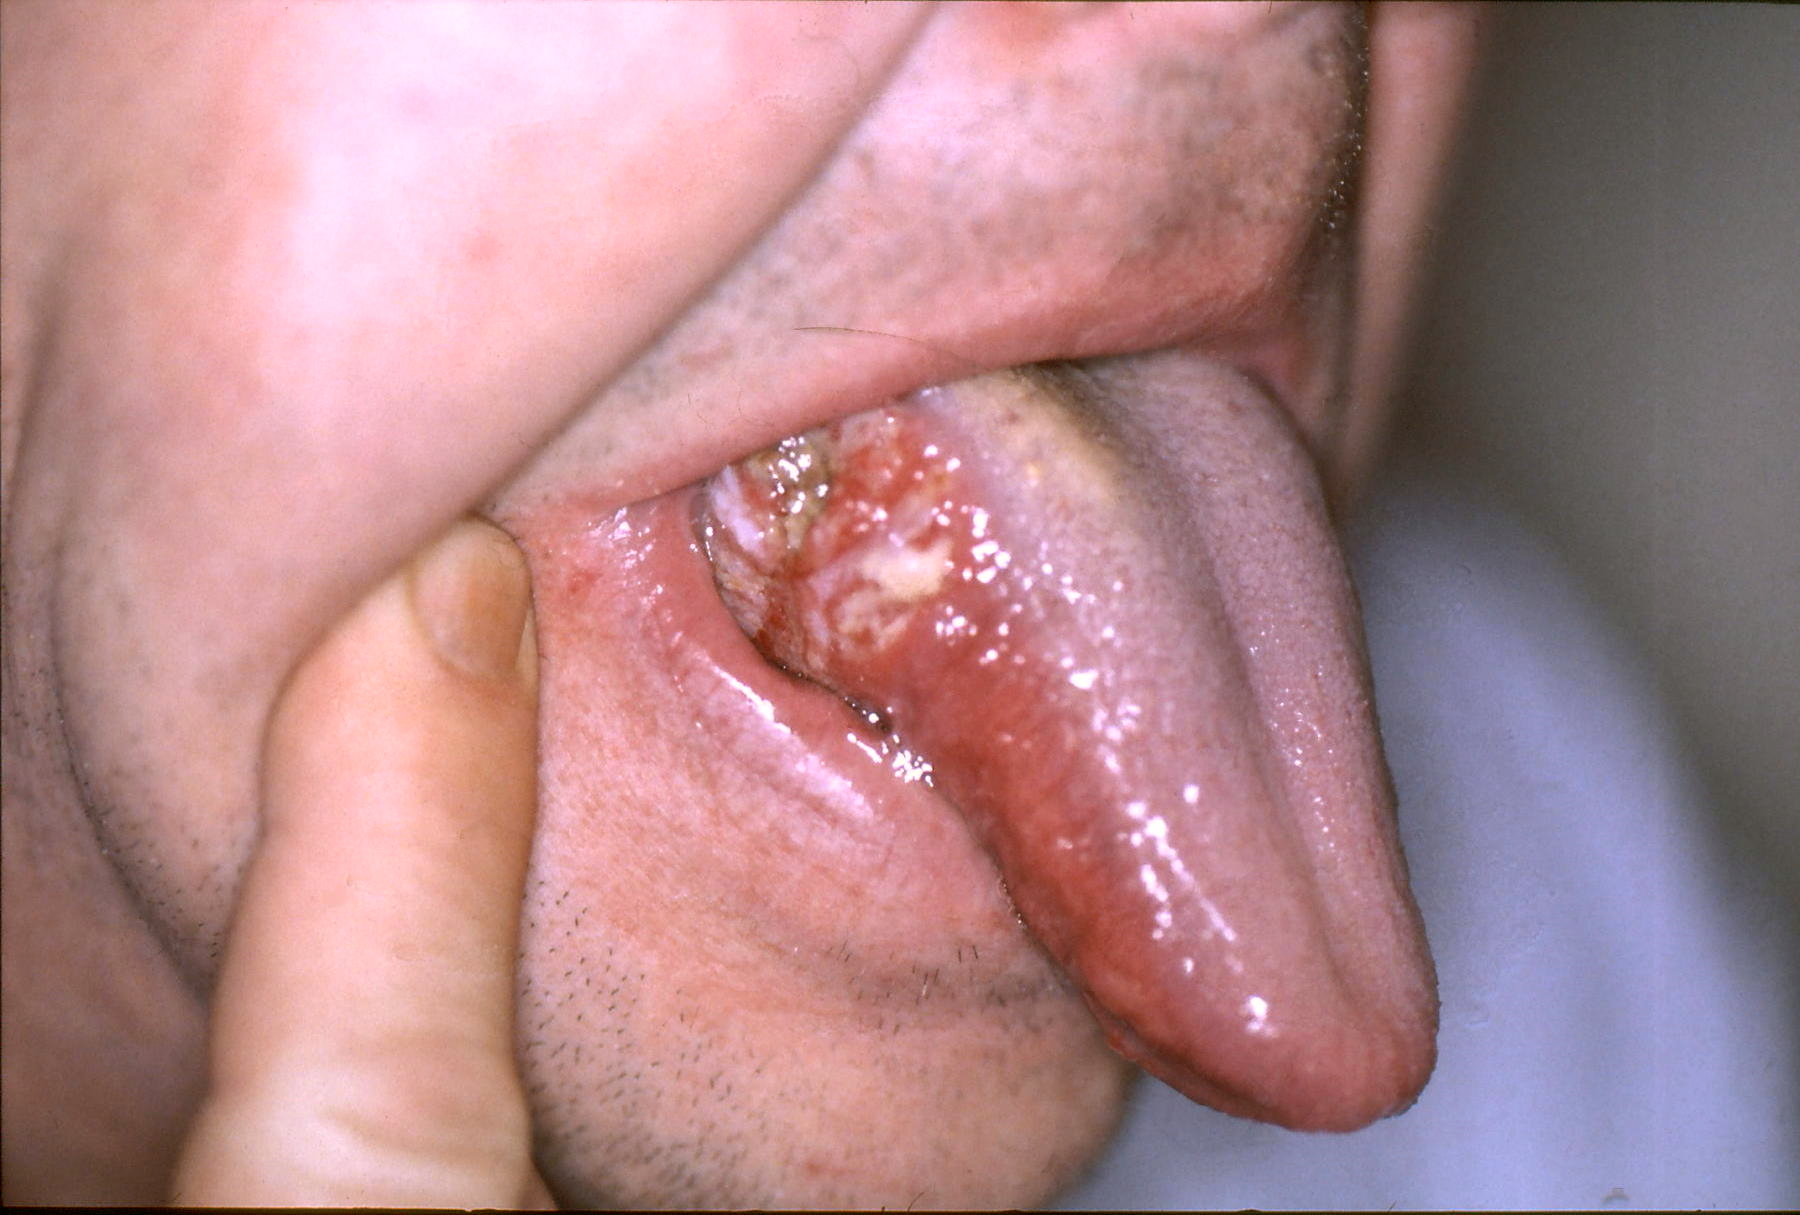 hpv-associated oropharyngeal cancer symptoms)